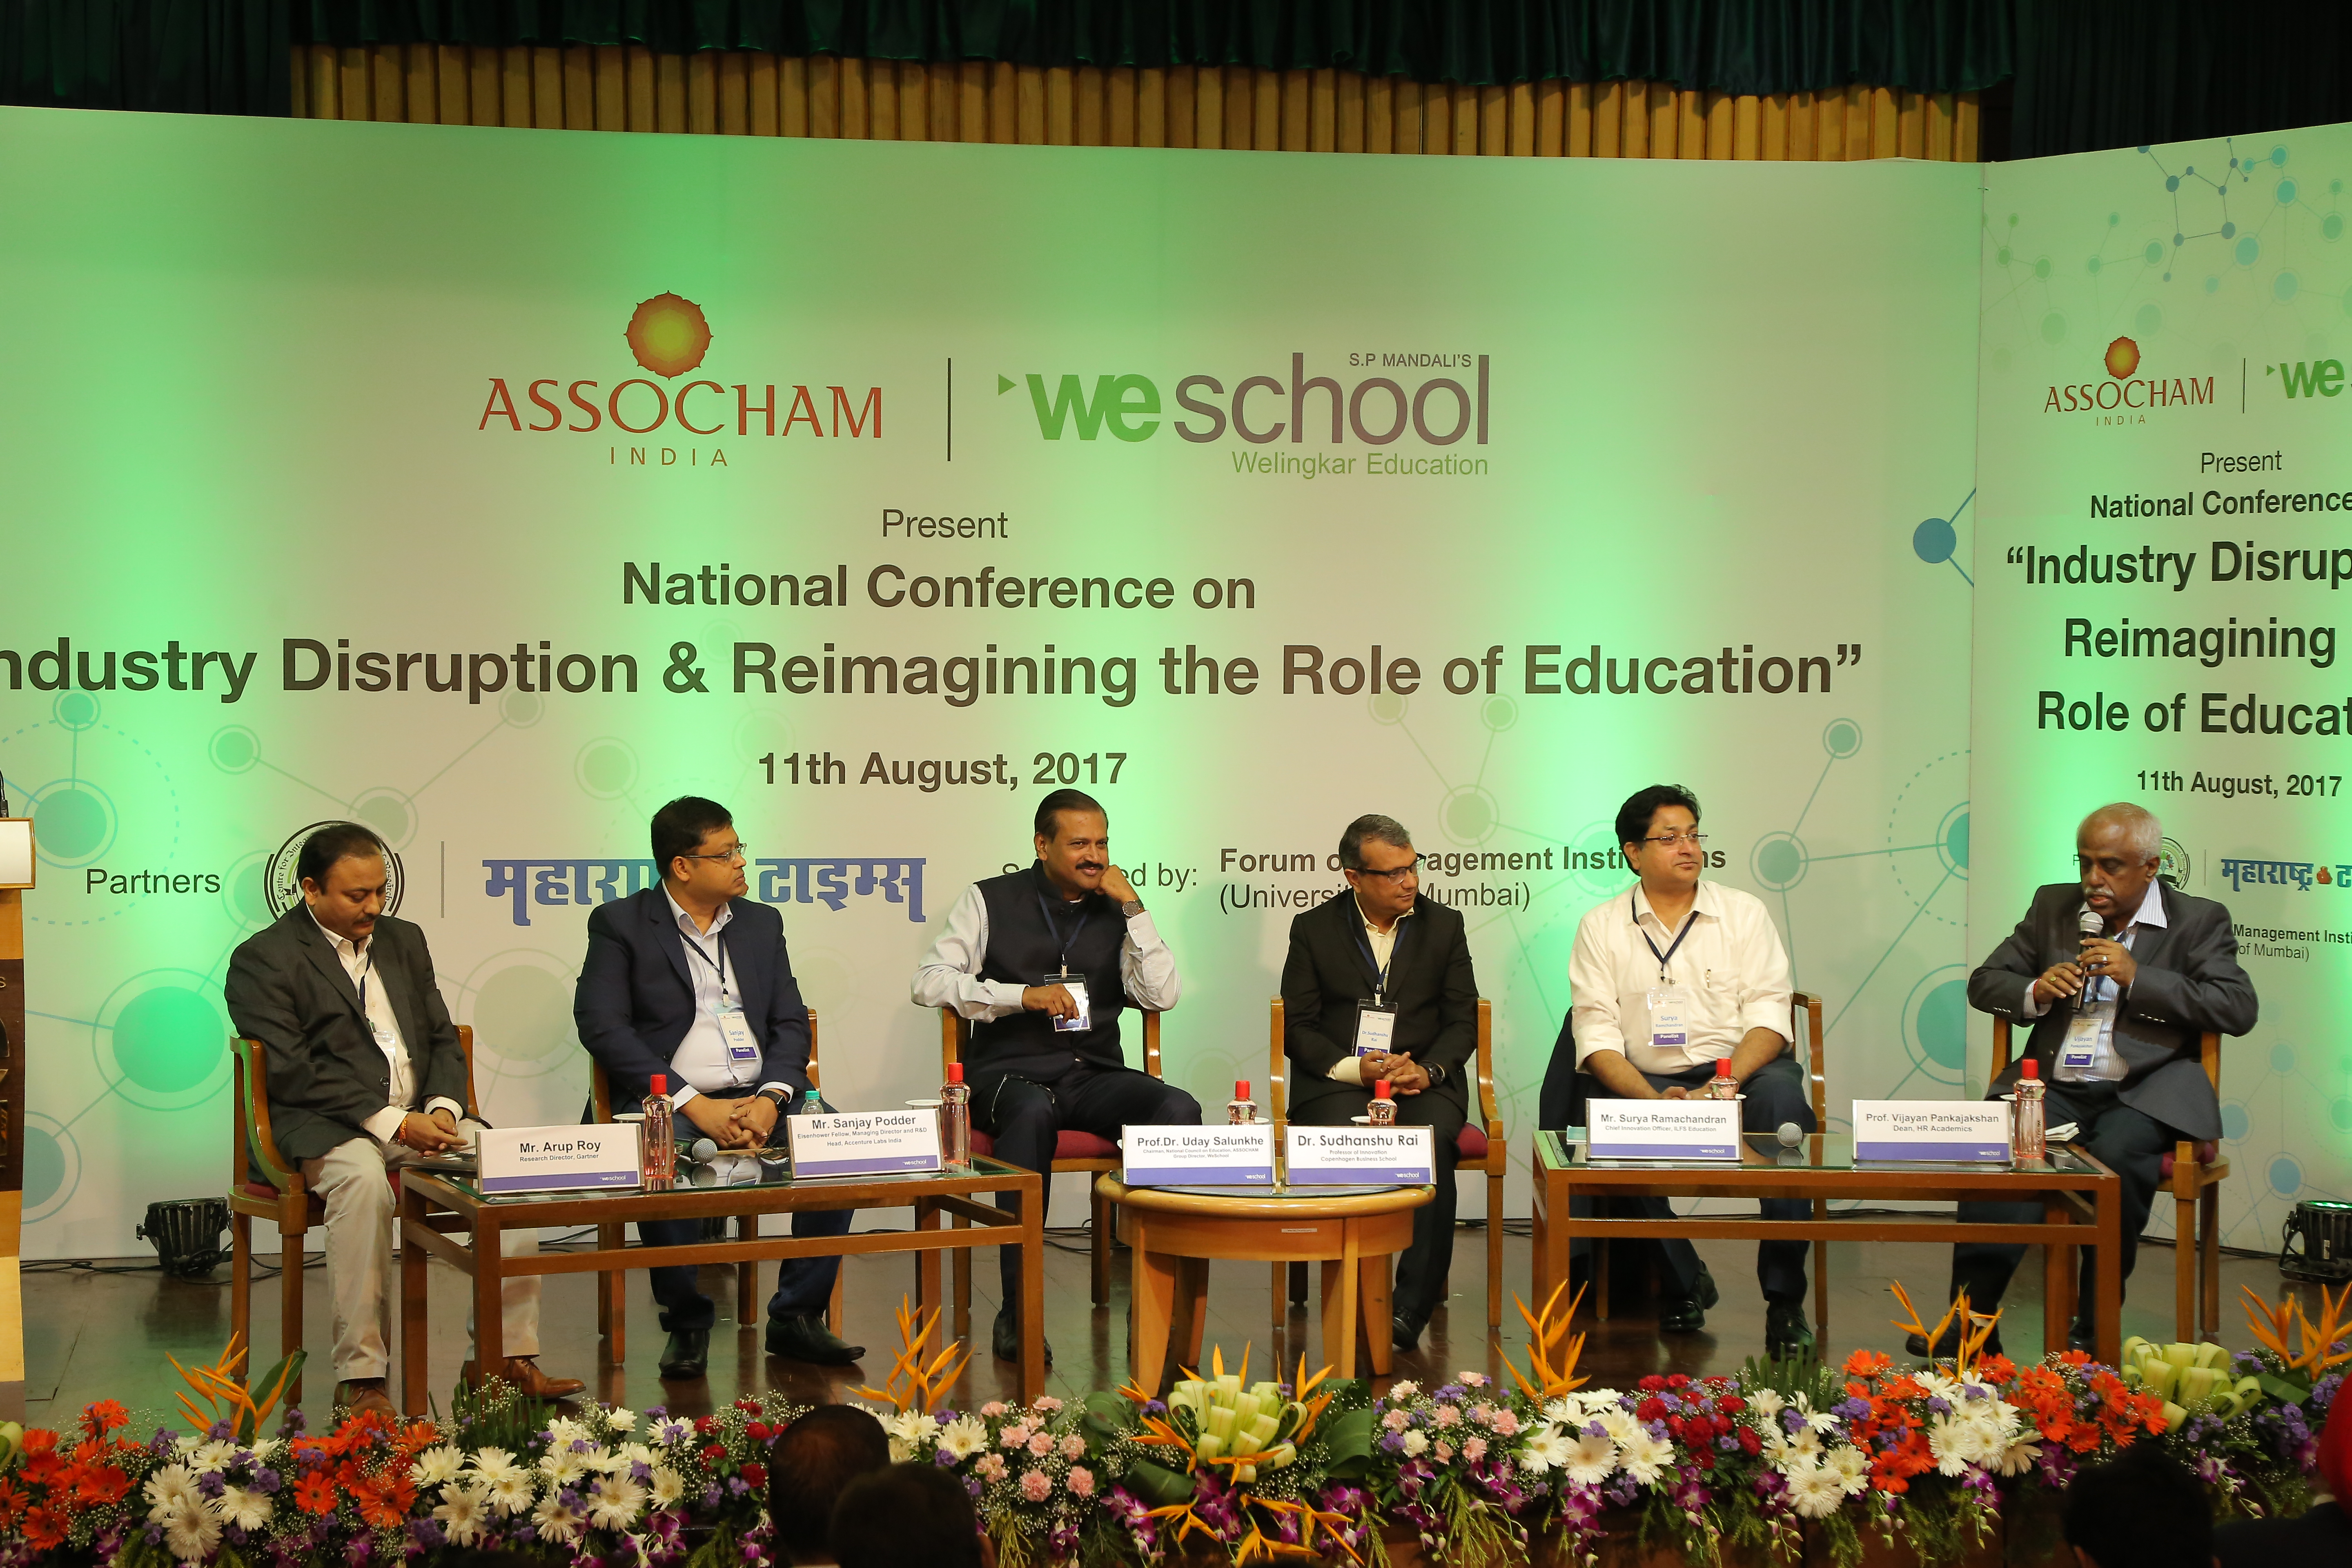 The conference 'Industry Disruption & Reimagining the Role of Education' organized by WeSchool and ASSOCHAM focused on the inclusion of technology in education